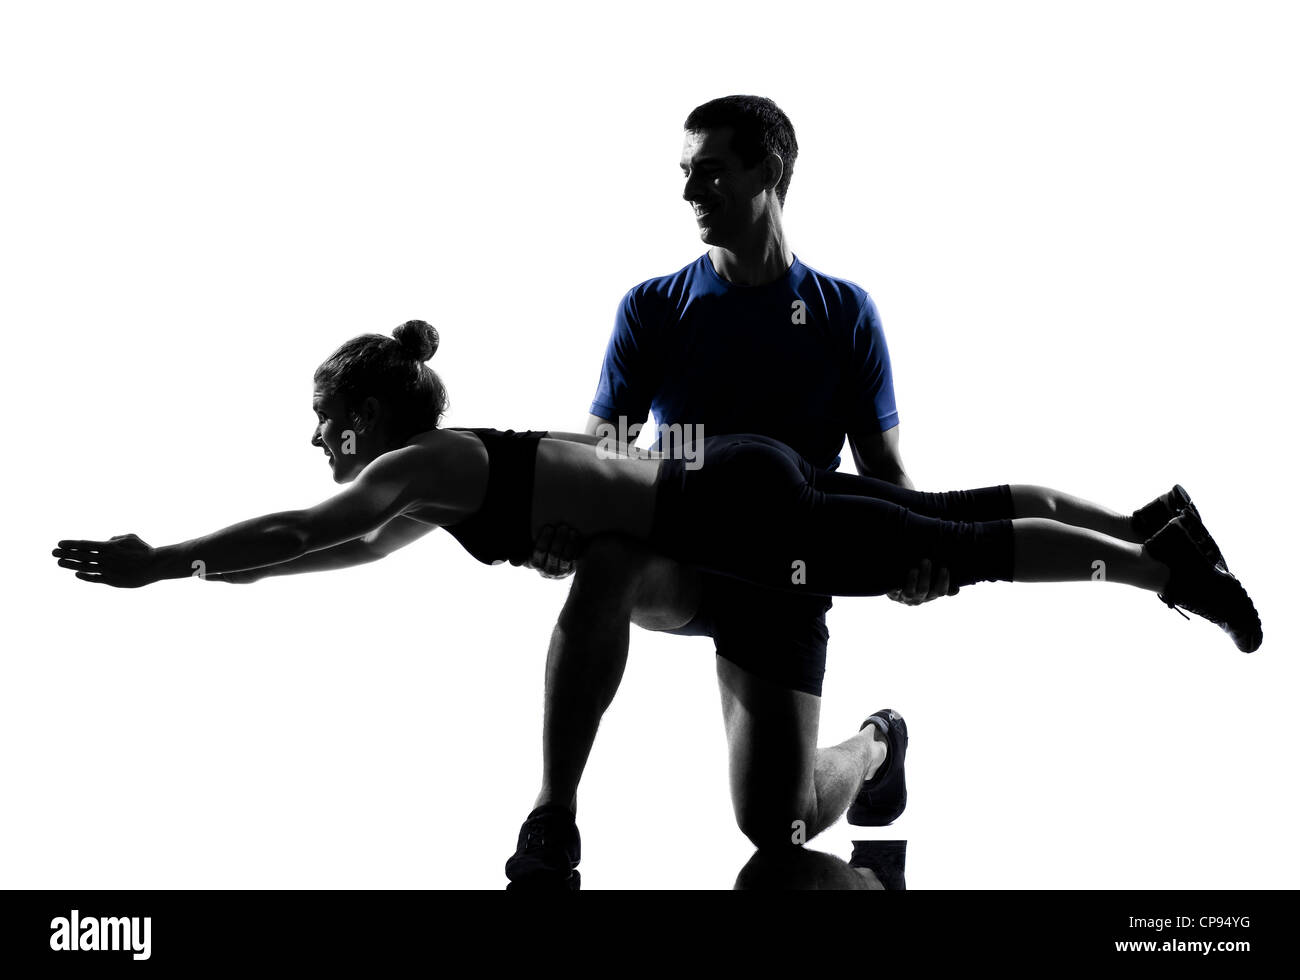 couple woman man exercising workout fitness aerobics posture in silhouette studio isolated on white background - Stock Image